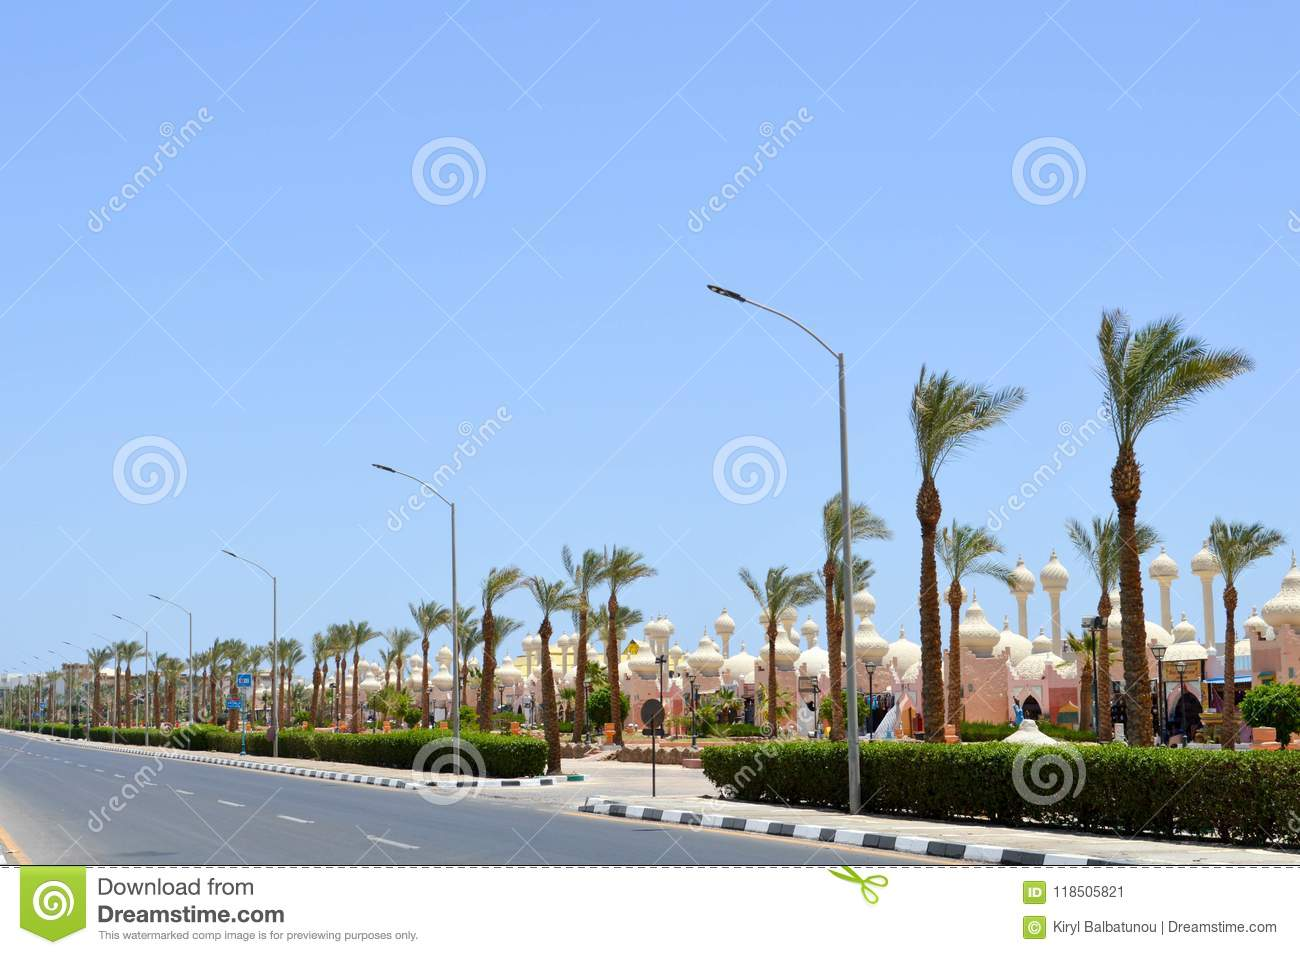 City landscape with a road, beautiful temples, mosques, buildings in the Arab Muslim Islamic Egyptian street against the backdrop